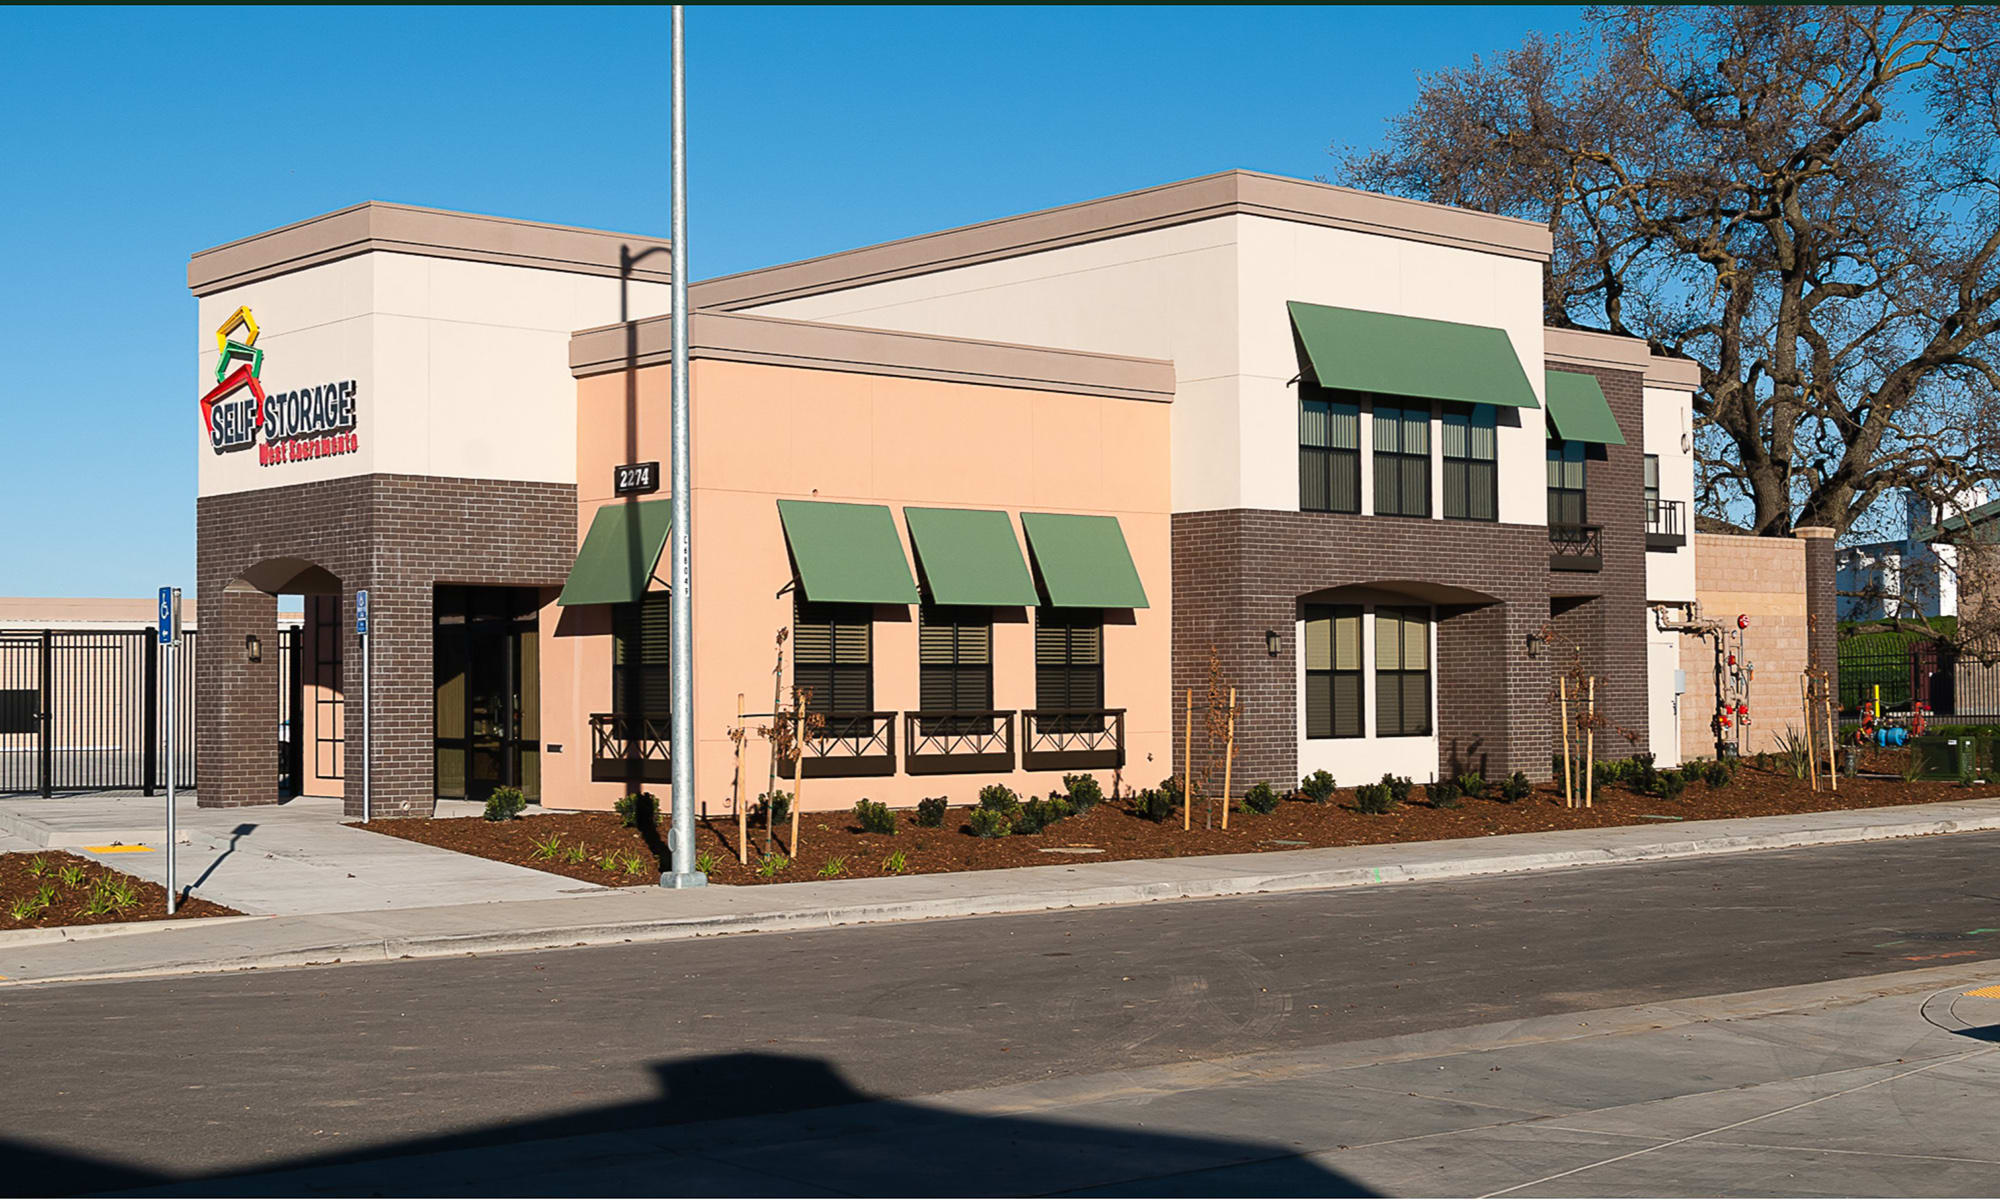 West Sacramento Self Storage - Home of the 1st Year Price Guarantee!